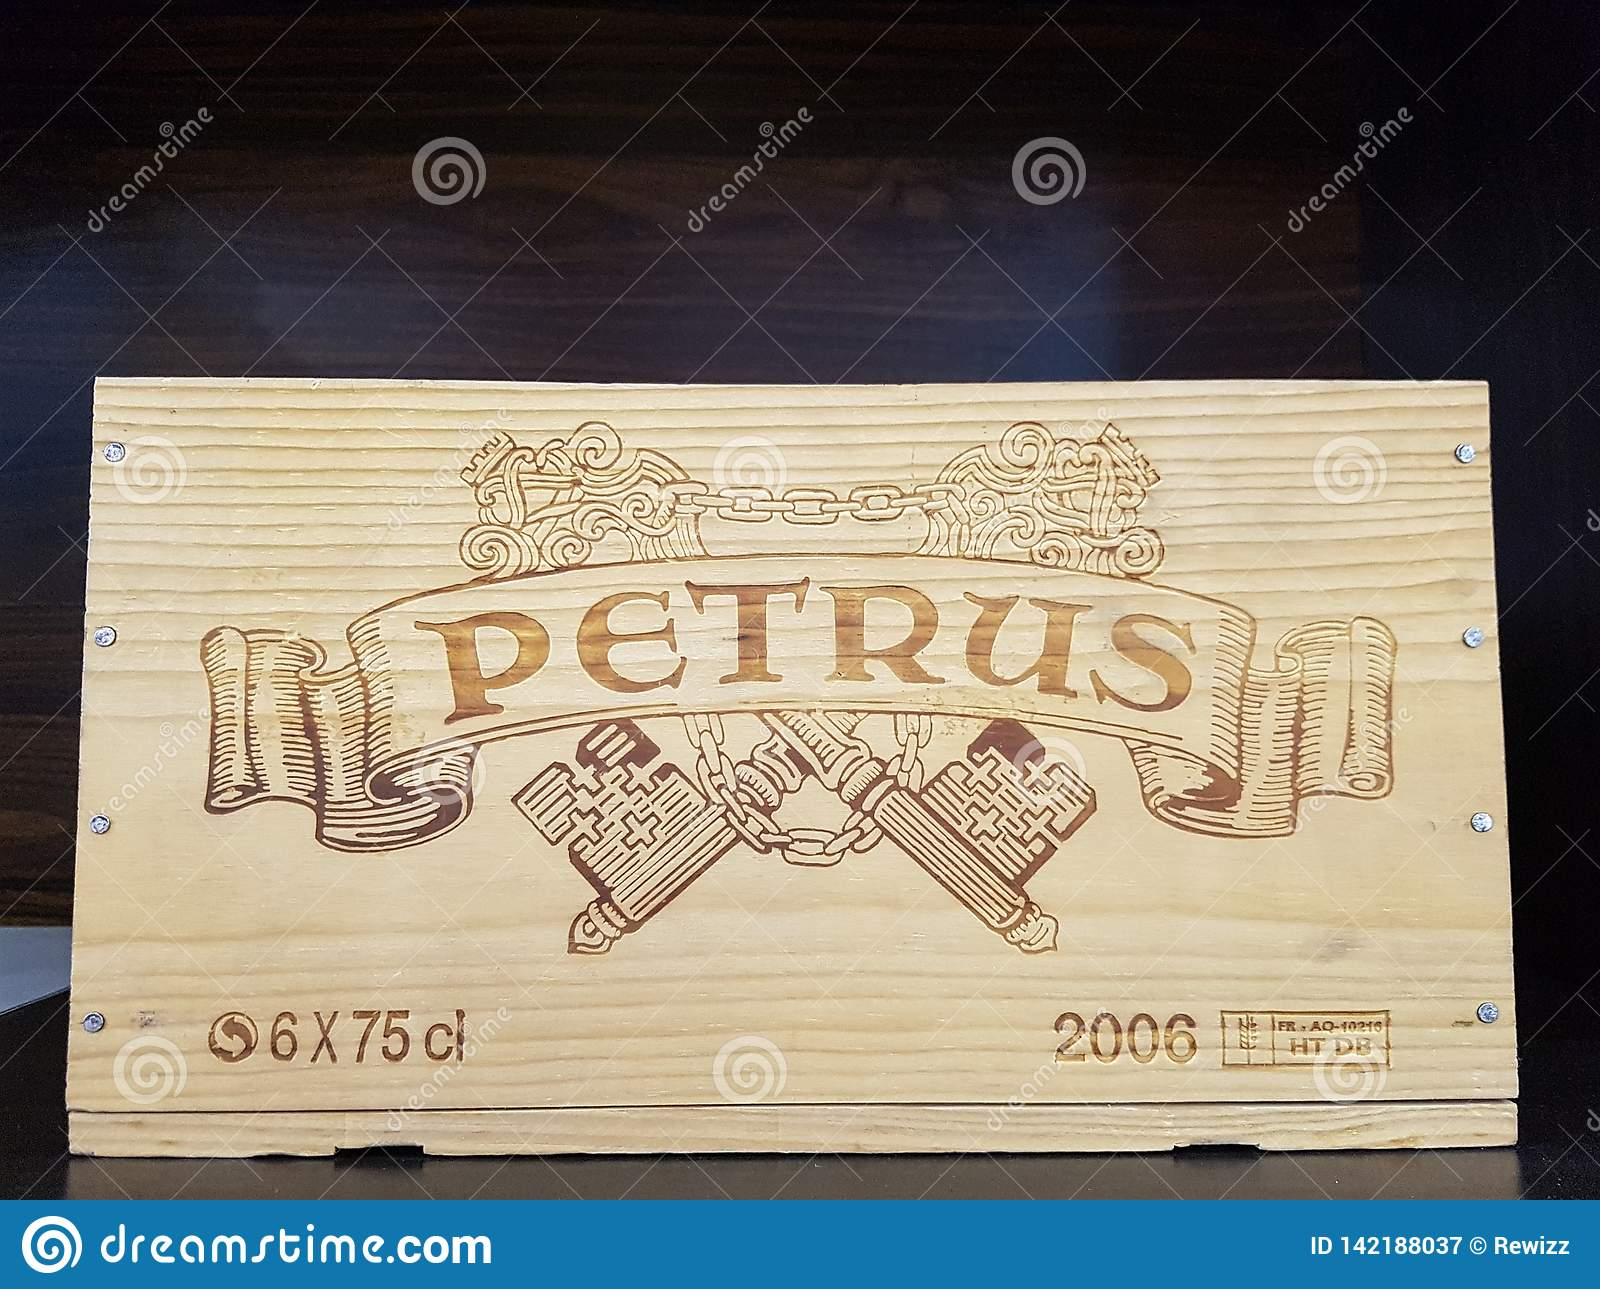 Picture Of A Wooden Case Of Petrus, A Red Wine That Is Known